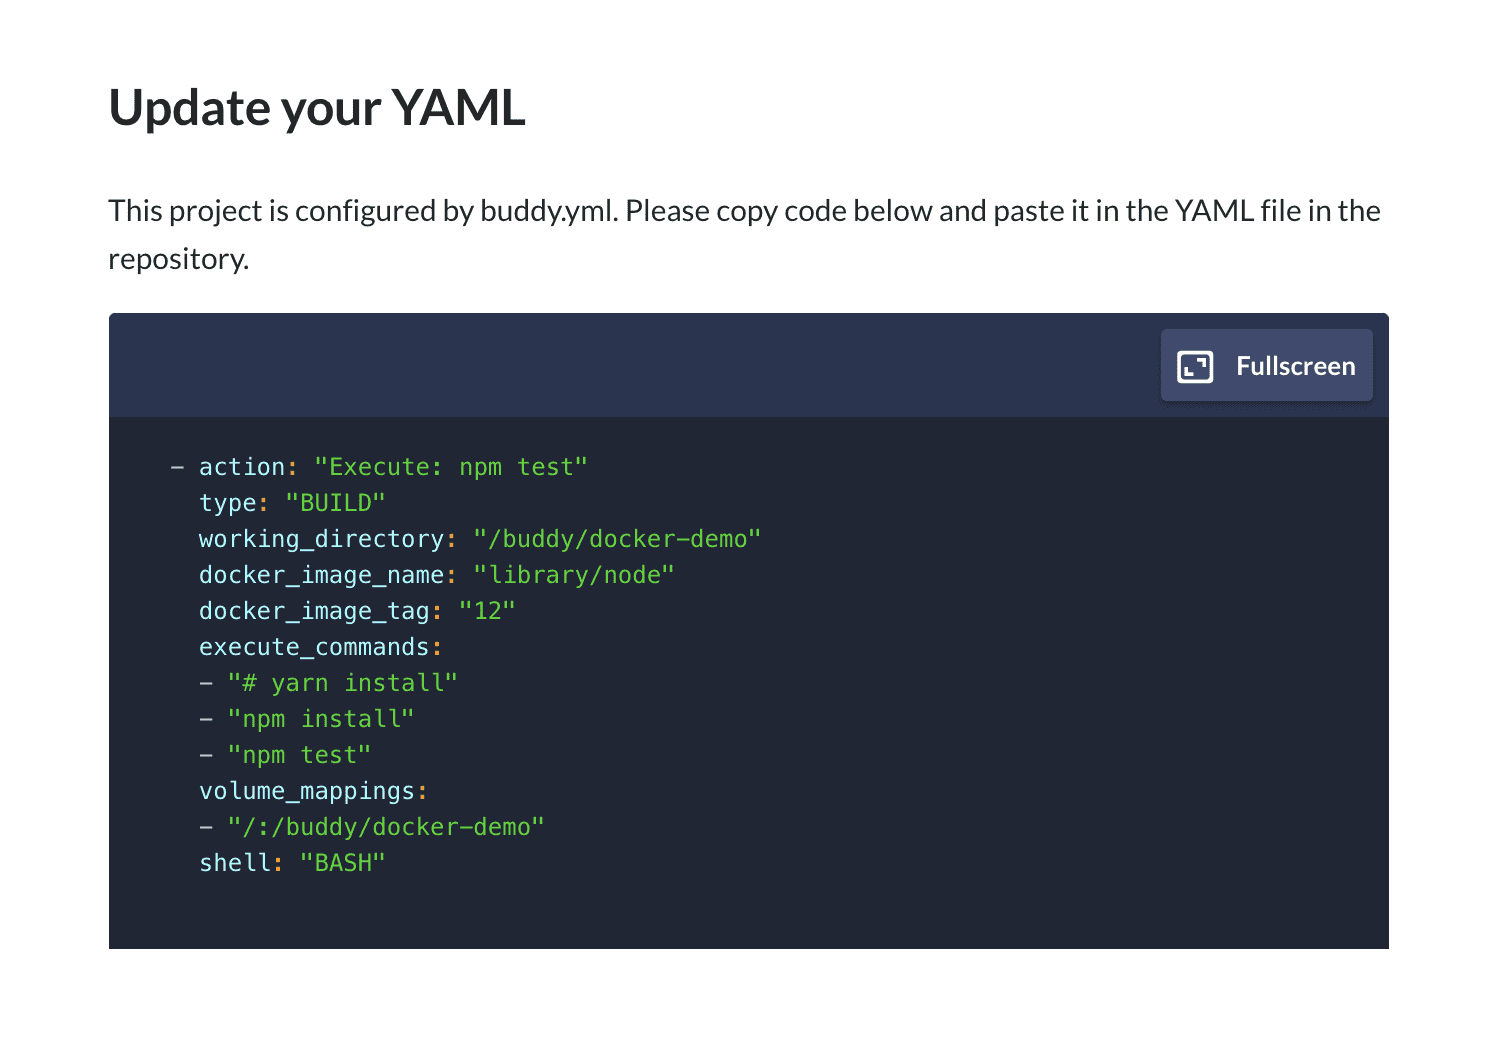 Action configured in YAML